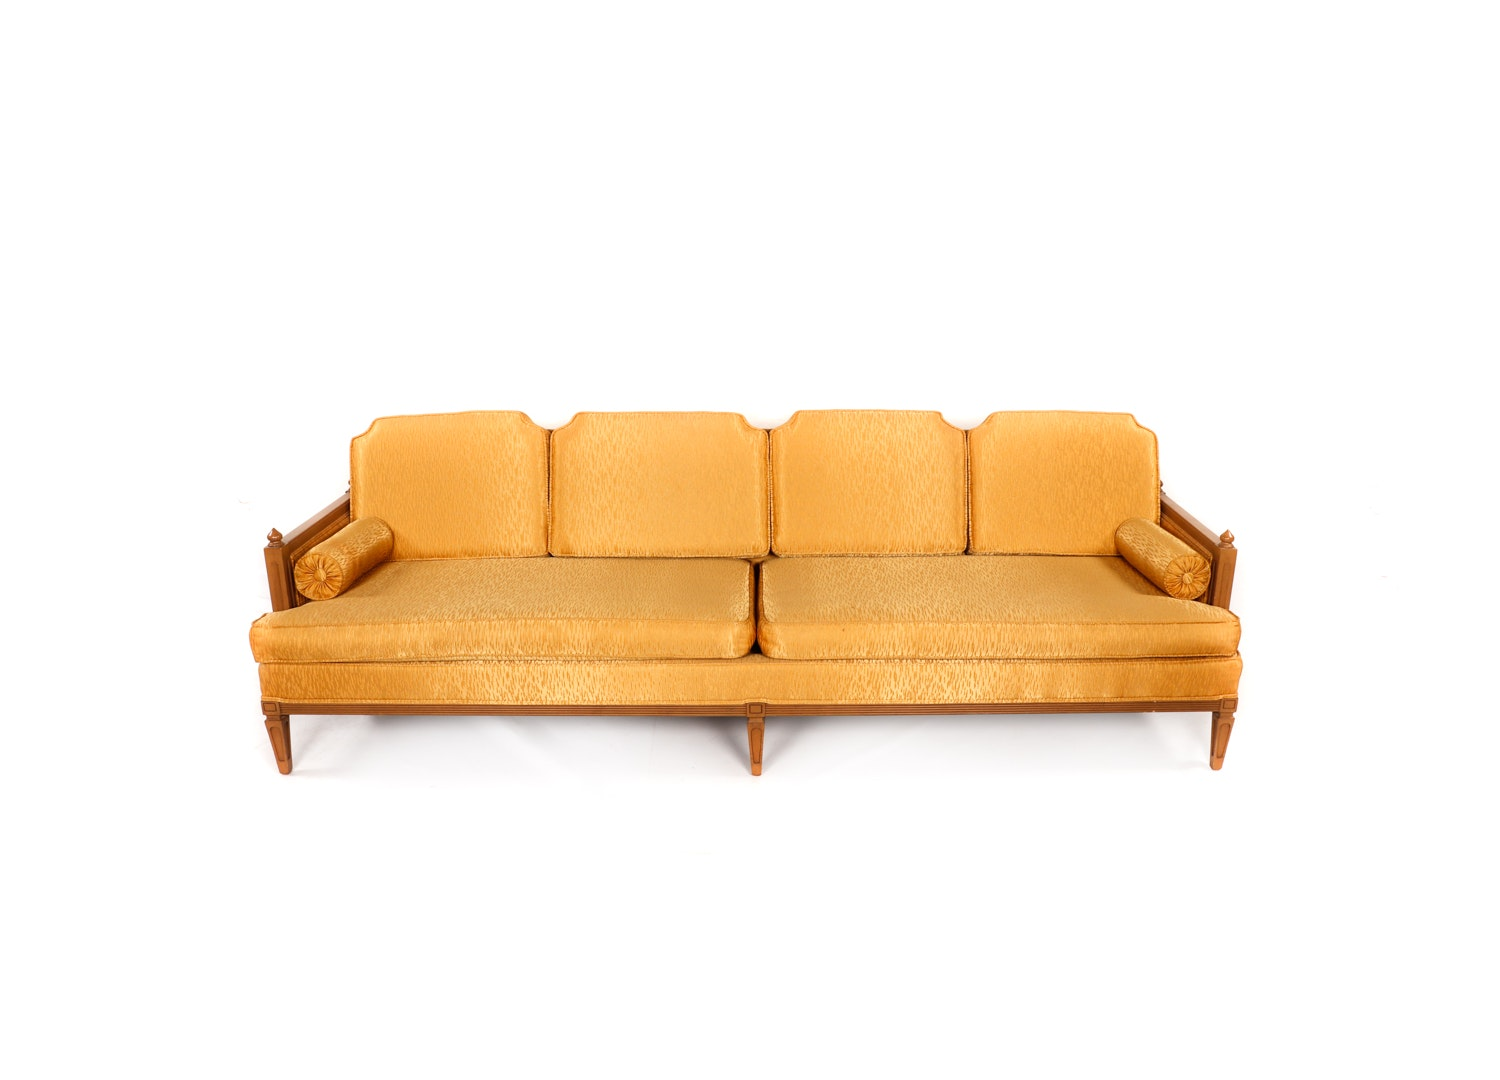 Vintage Mid-Century Gold Tone Upholstered Sofa by Quality Furniture House